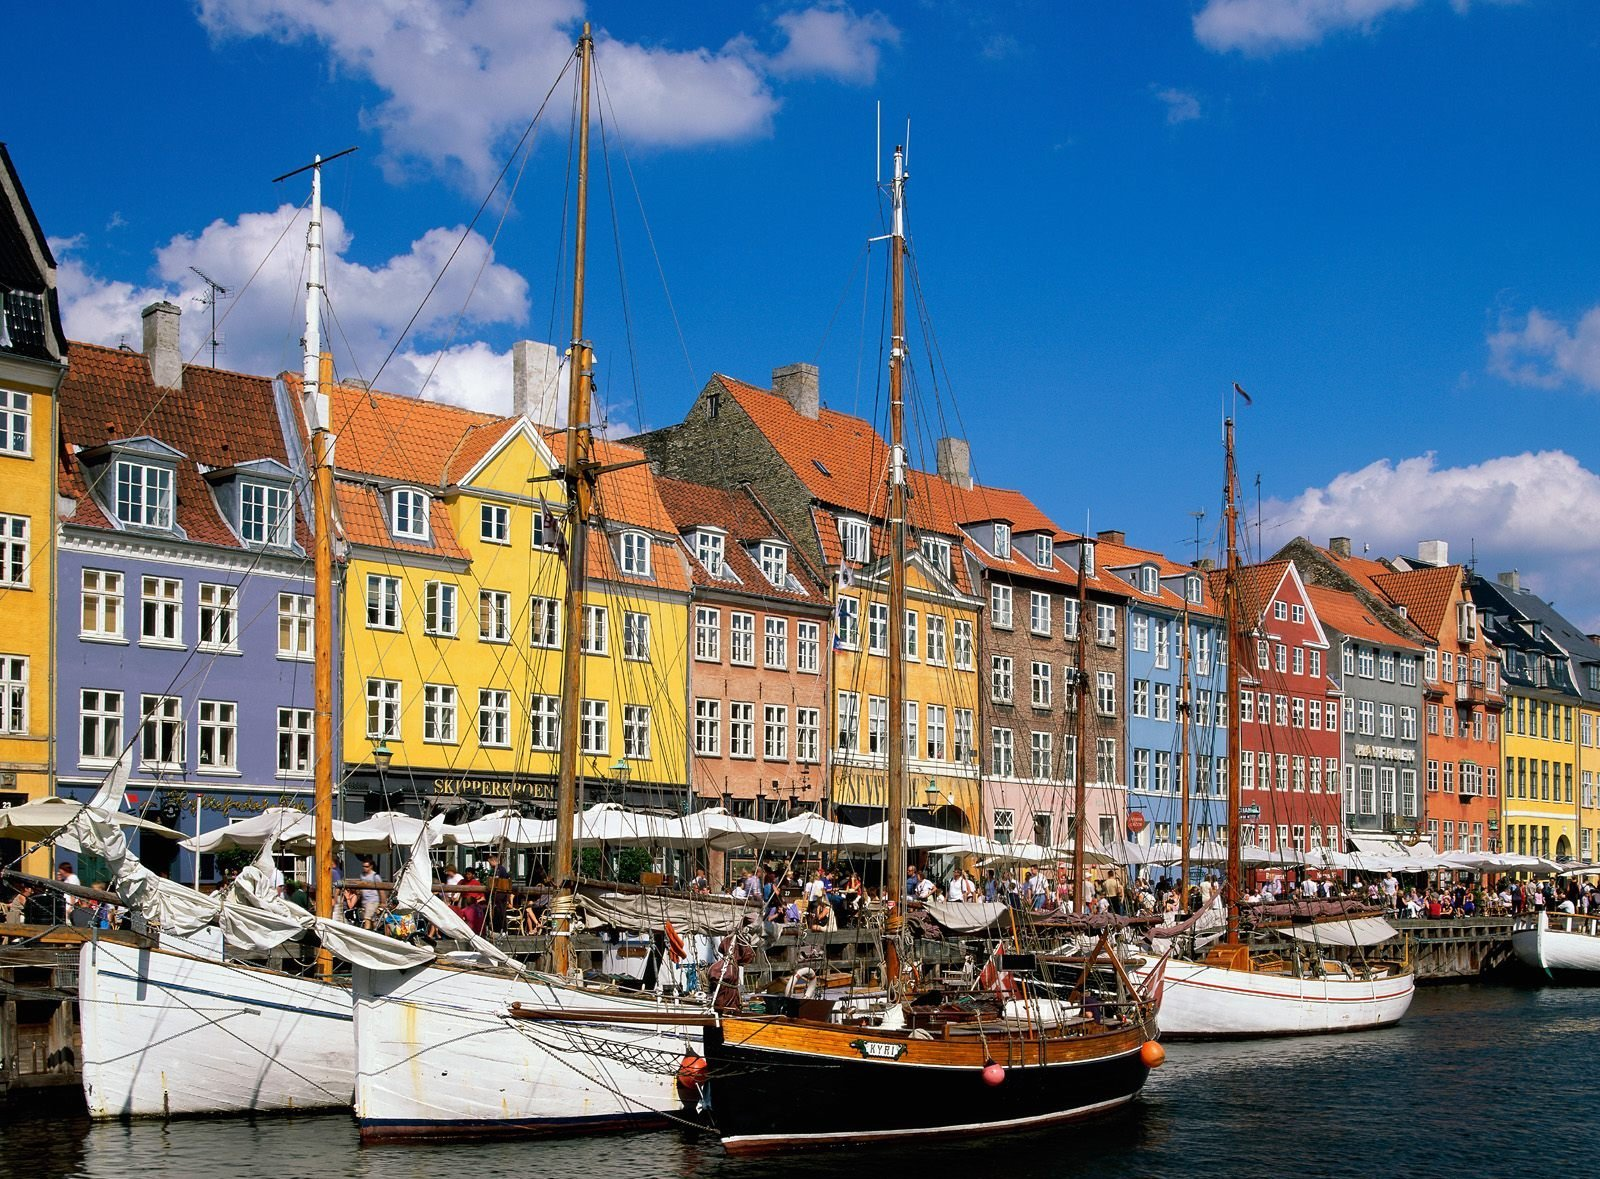 http://www.prasannaholidays.com/wp-content/uploads/2014/06/Nyhavn-Canal-20.jpg